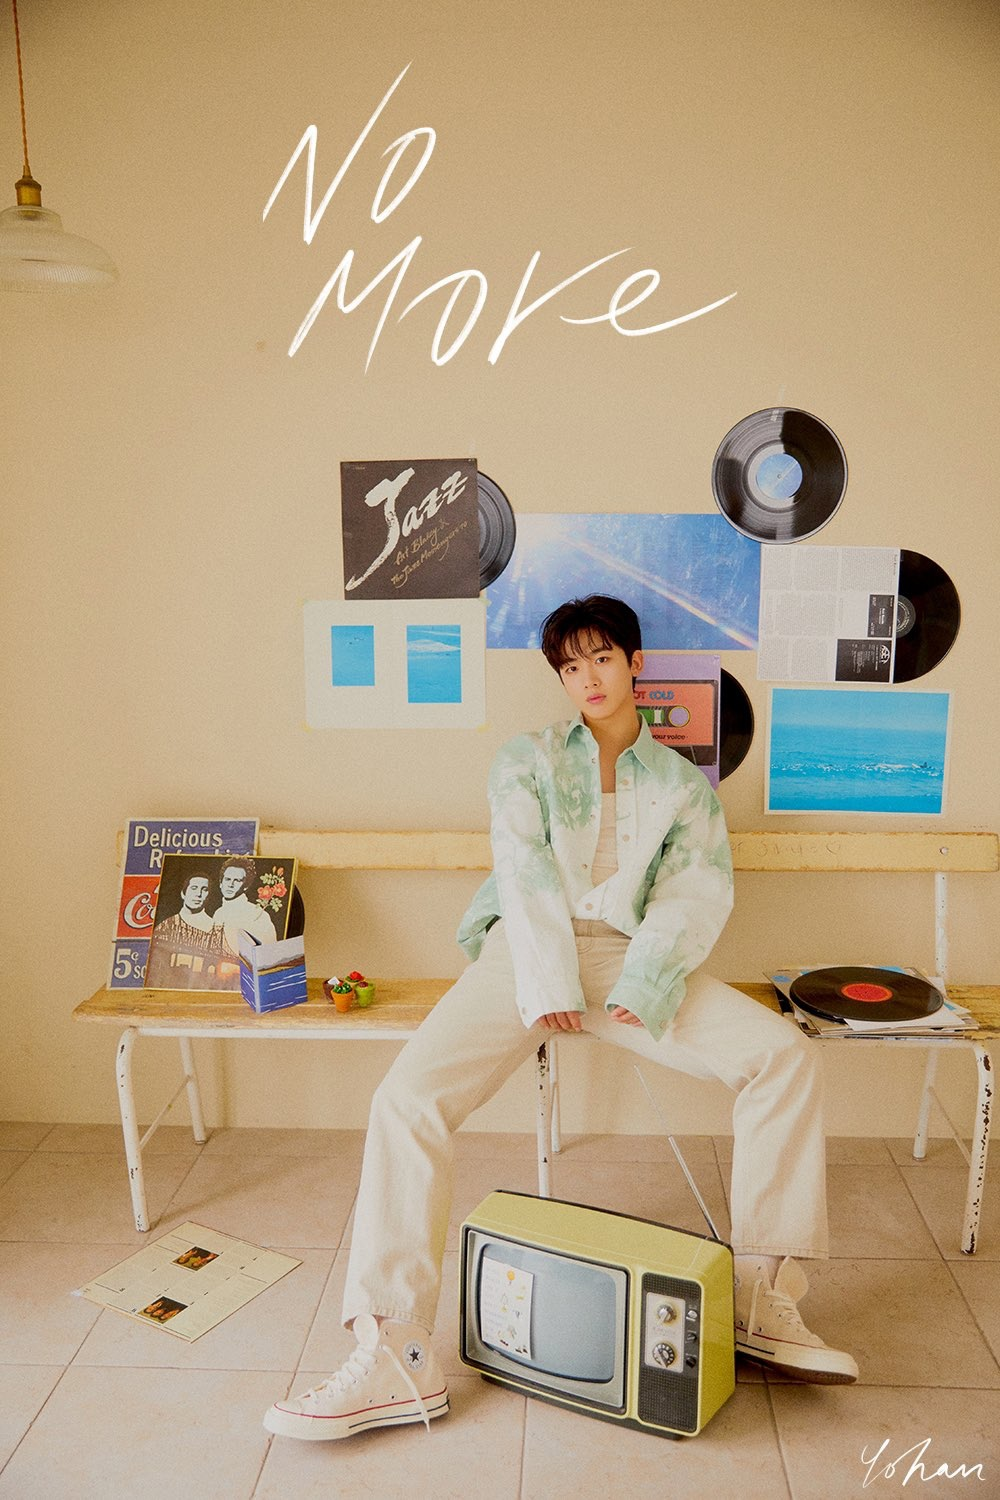 Kim Yo Han's 1st digital single 'No More' Concept Image #2